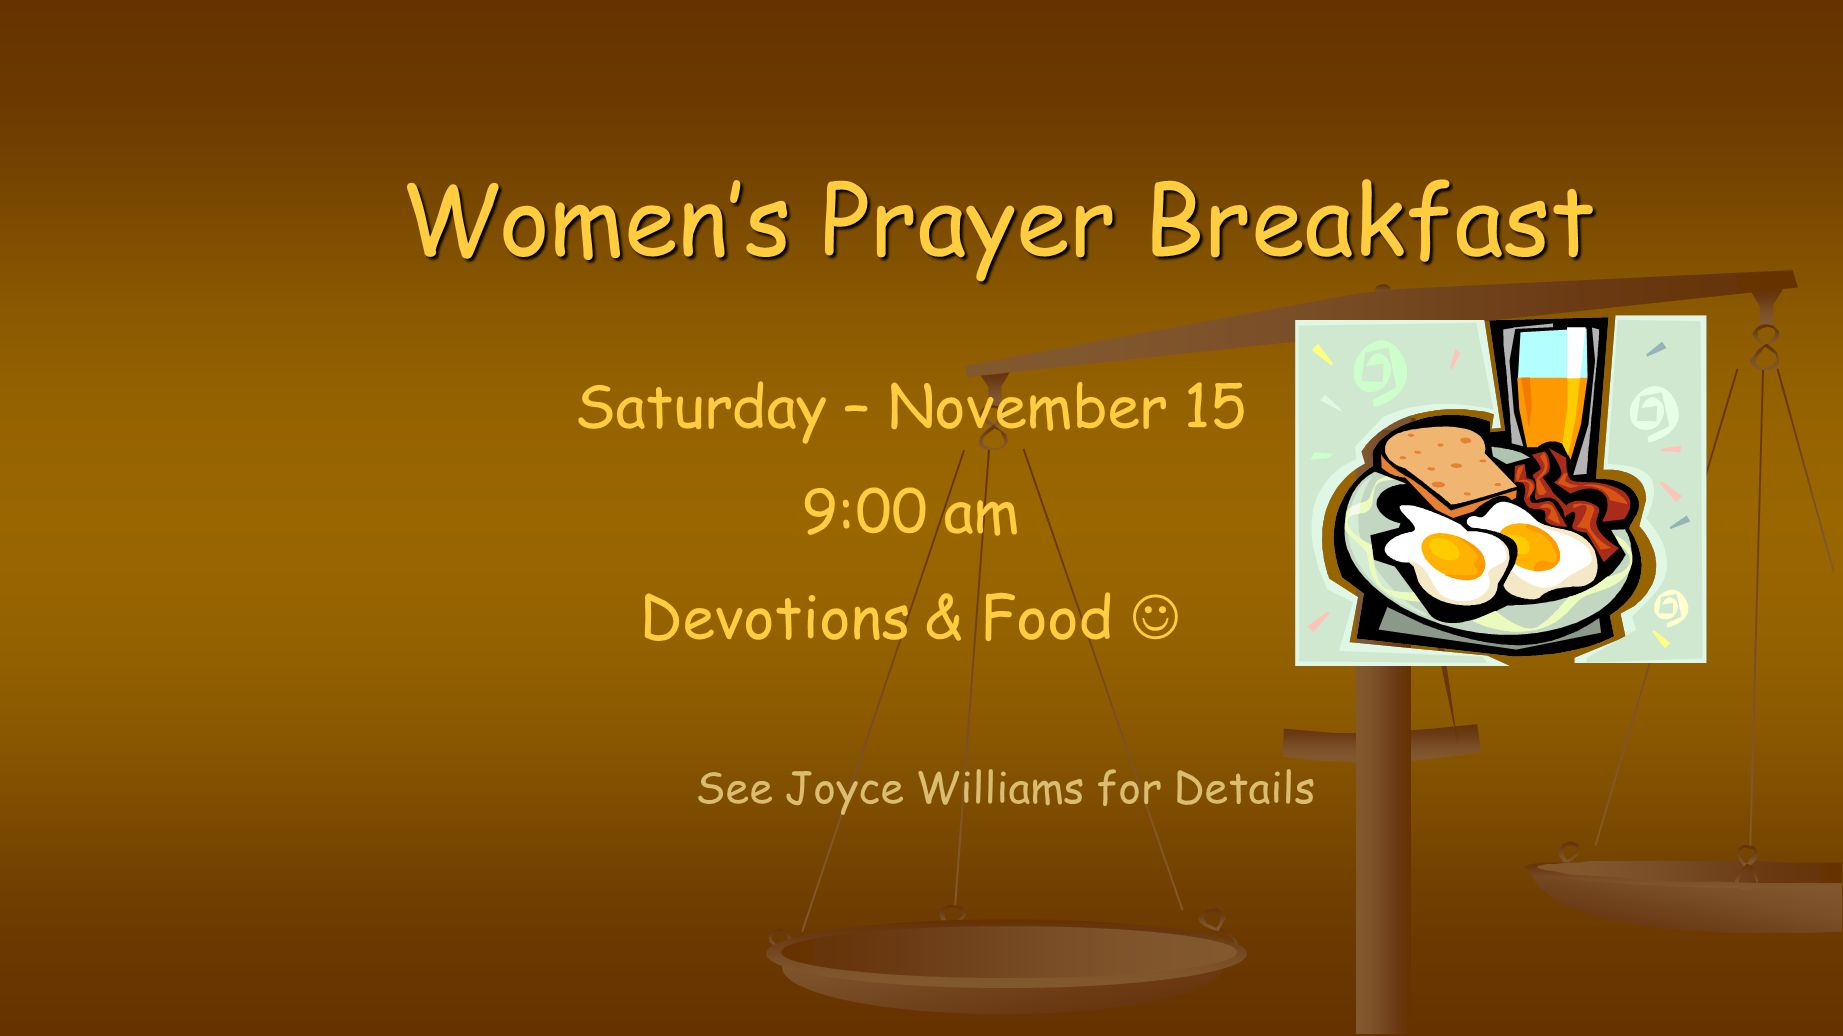 Women's Prayer Breakfast See Joyce Williams for Details Saturday – November 15 9:00 am Devotions & Food